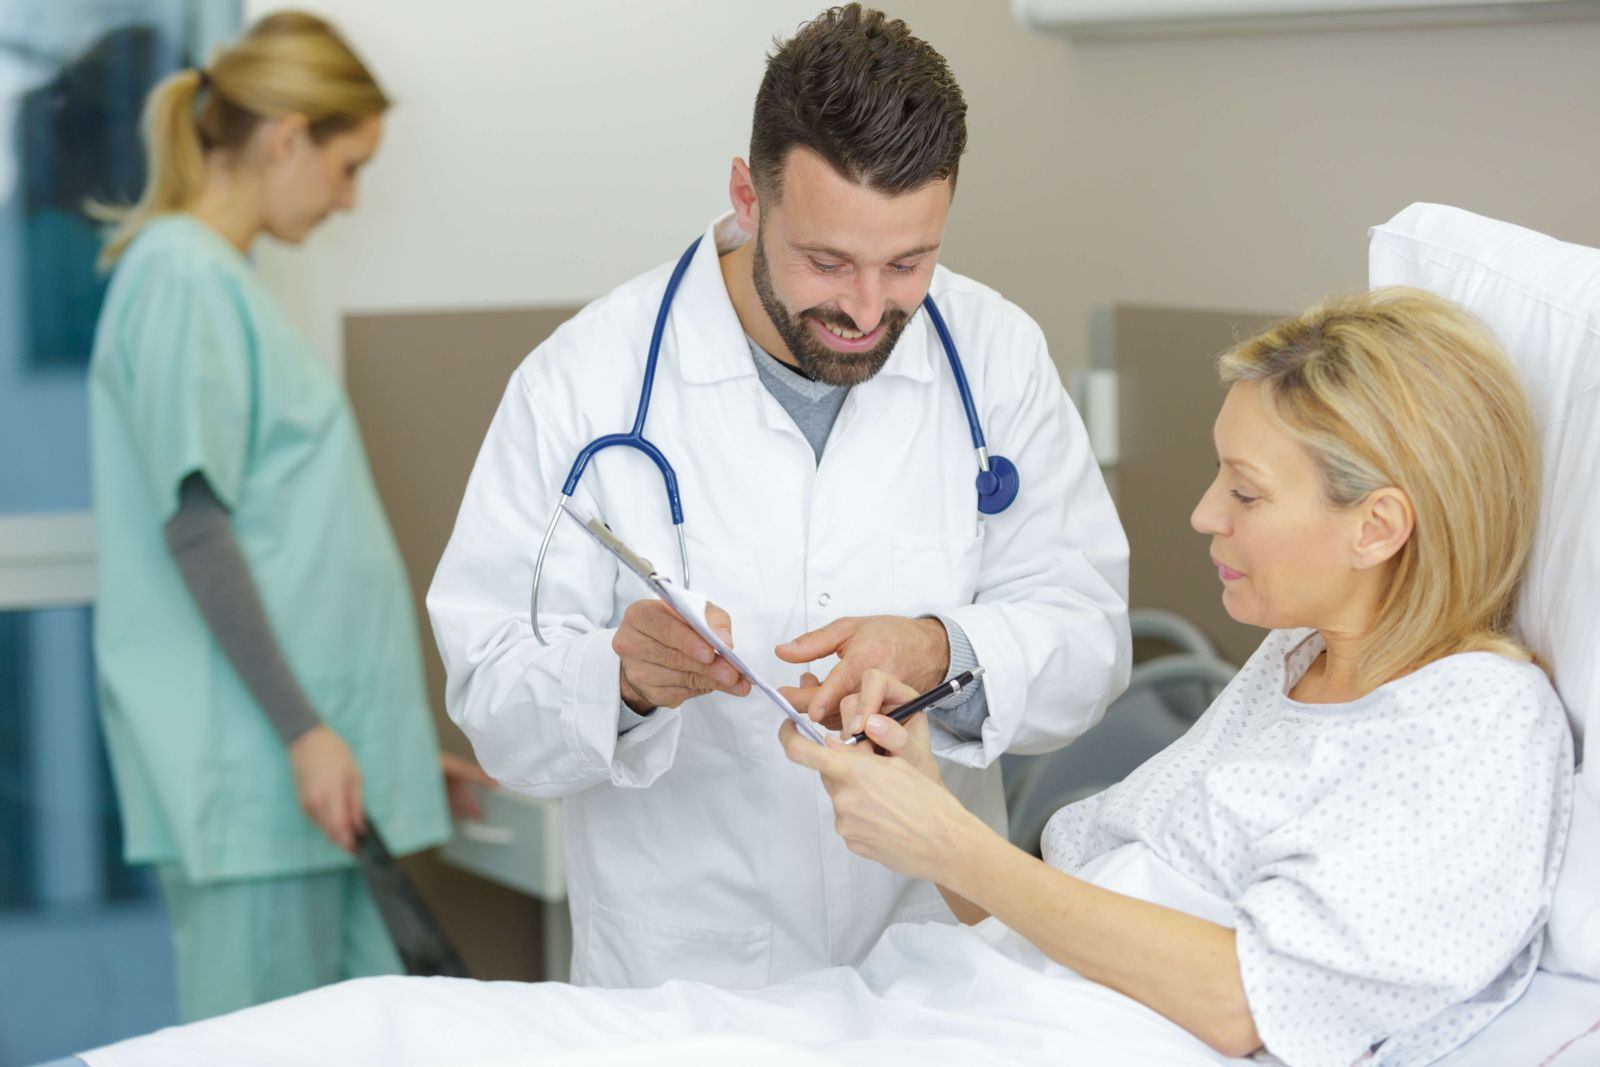 Informed Consent & its Impact on Medical Malpractice Cases